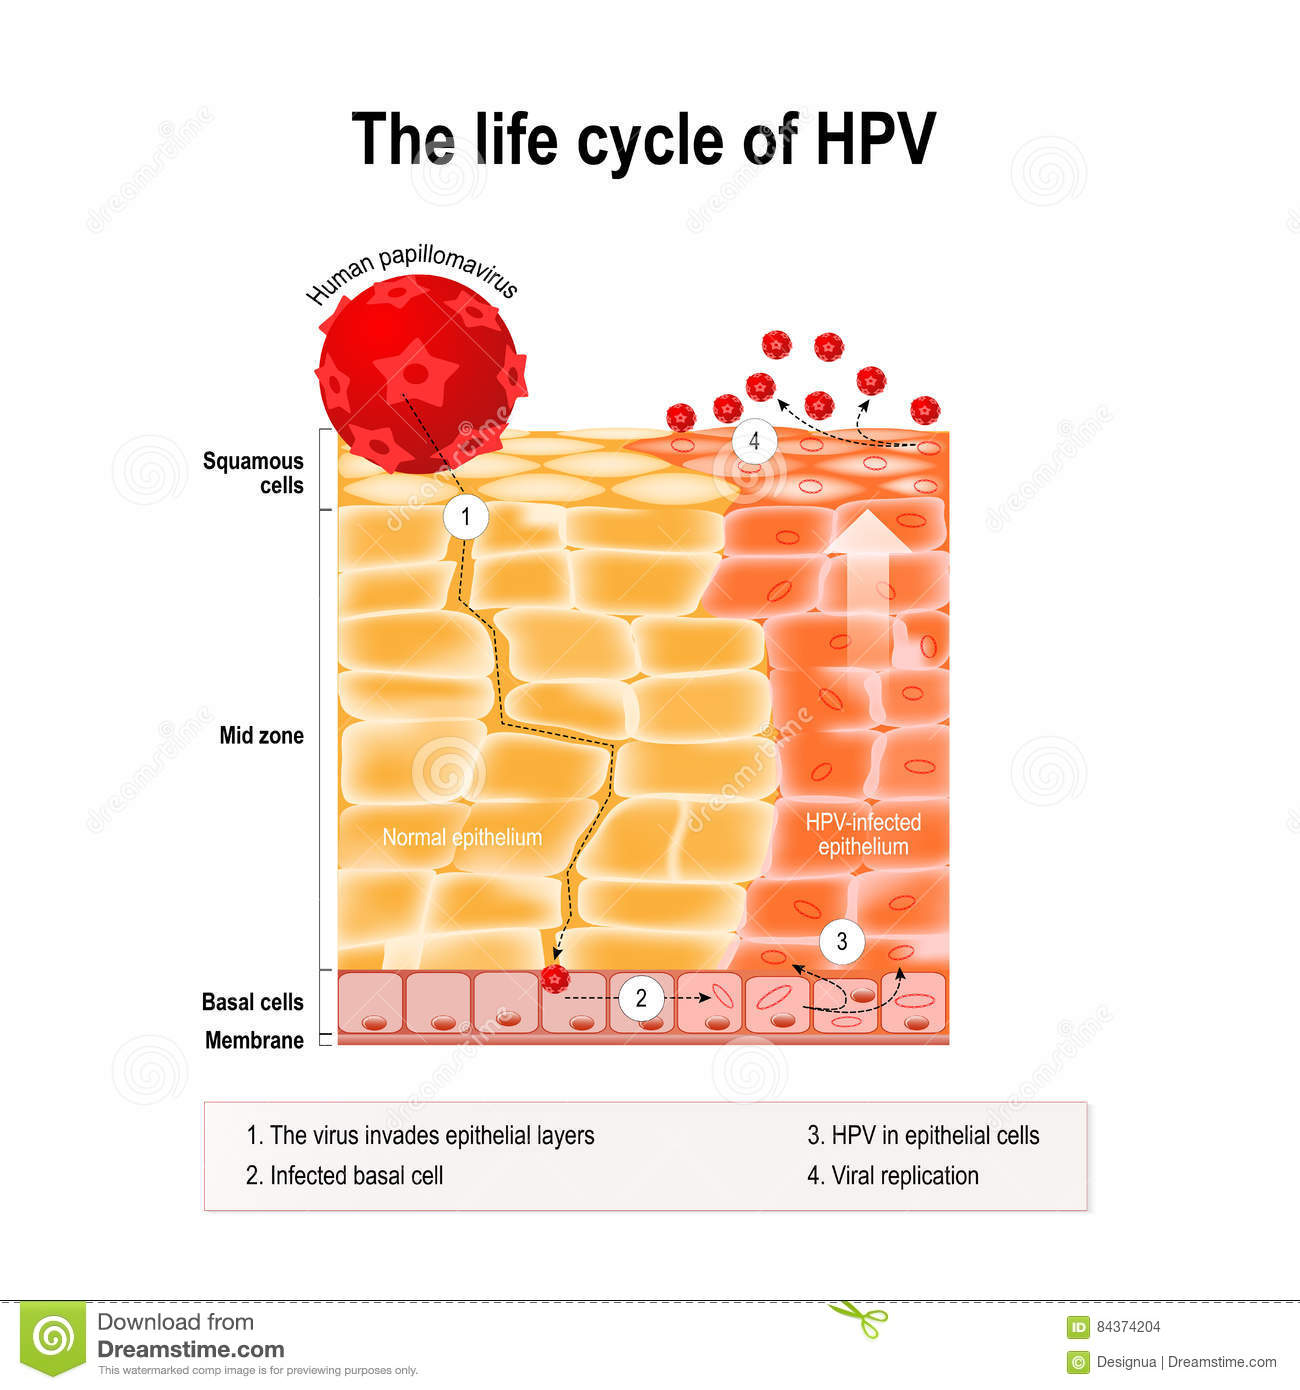 human papilloma virus airborne how often does hpv cause cancer in males